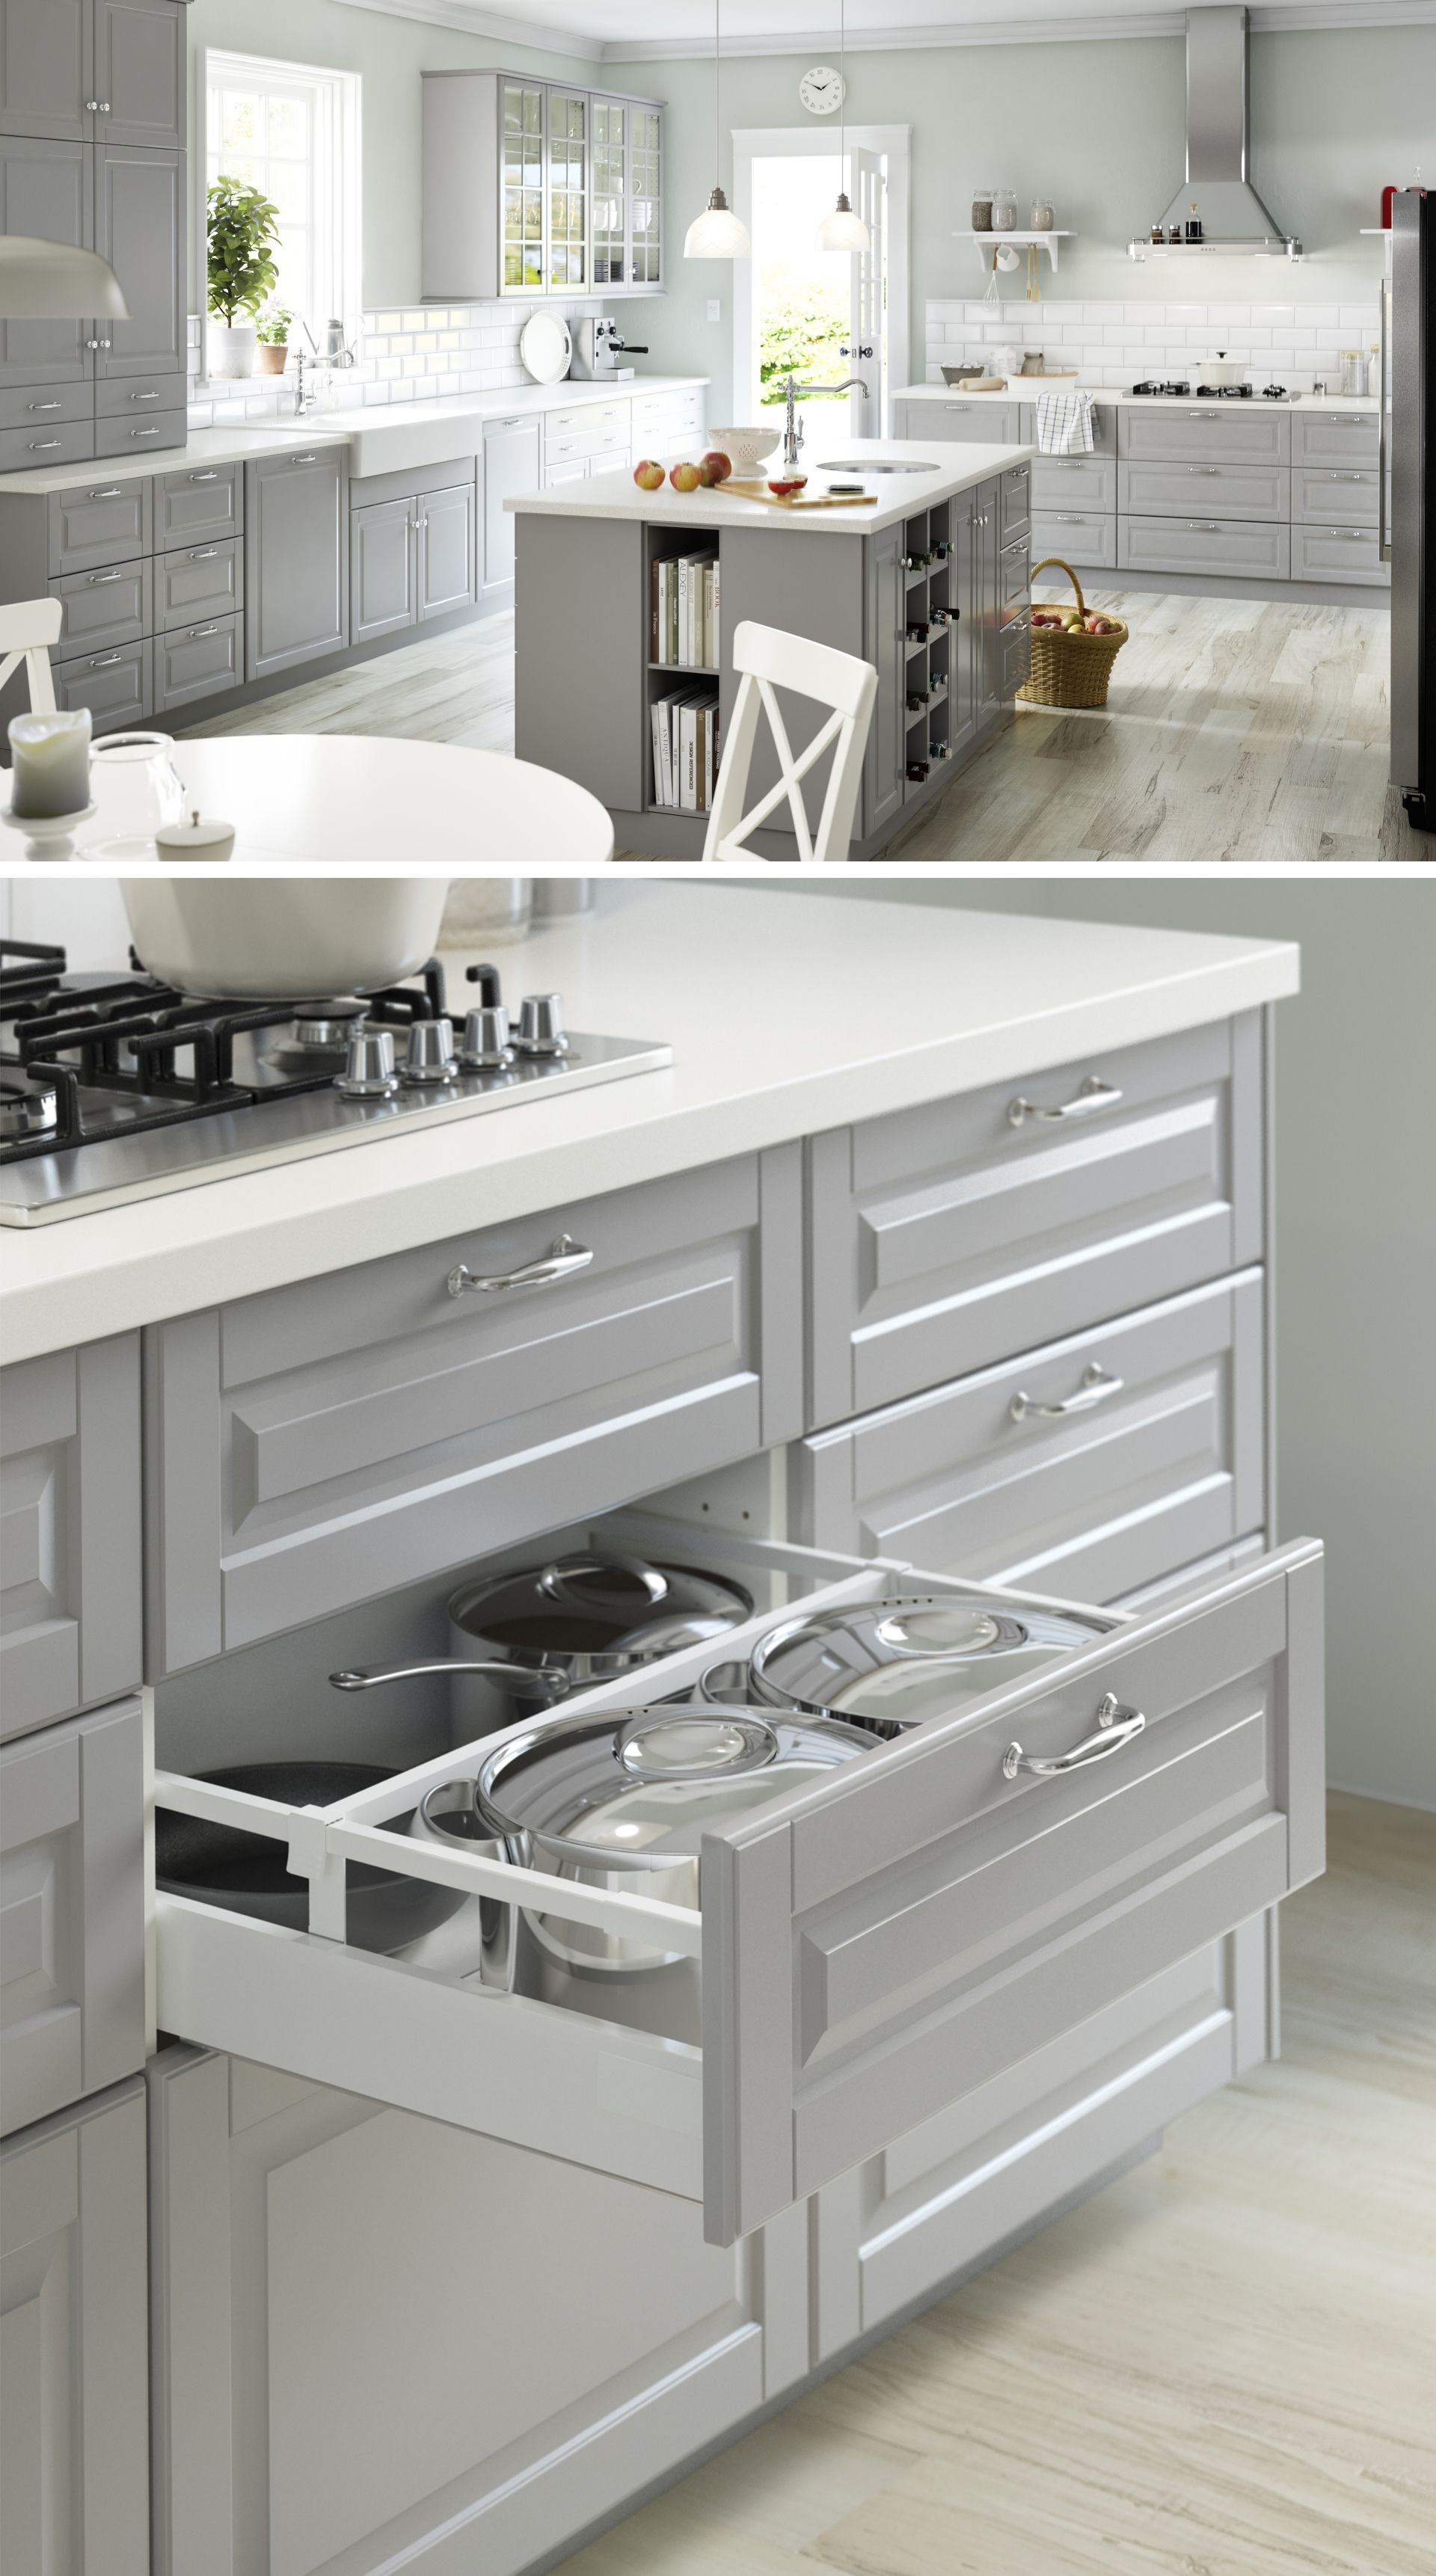 Ikea Sektion Kitchen Cabinets Brilliant Kitchen Cabinets That Suit You And How You Use Your Kitchen Will Design Inspiration